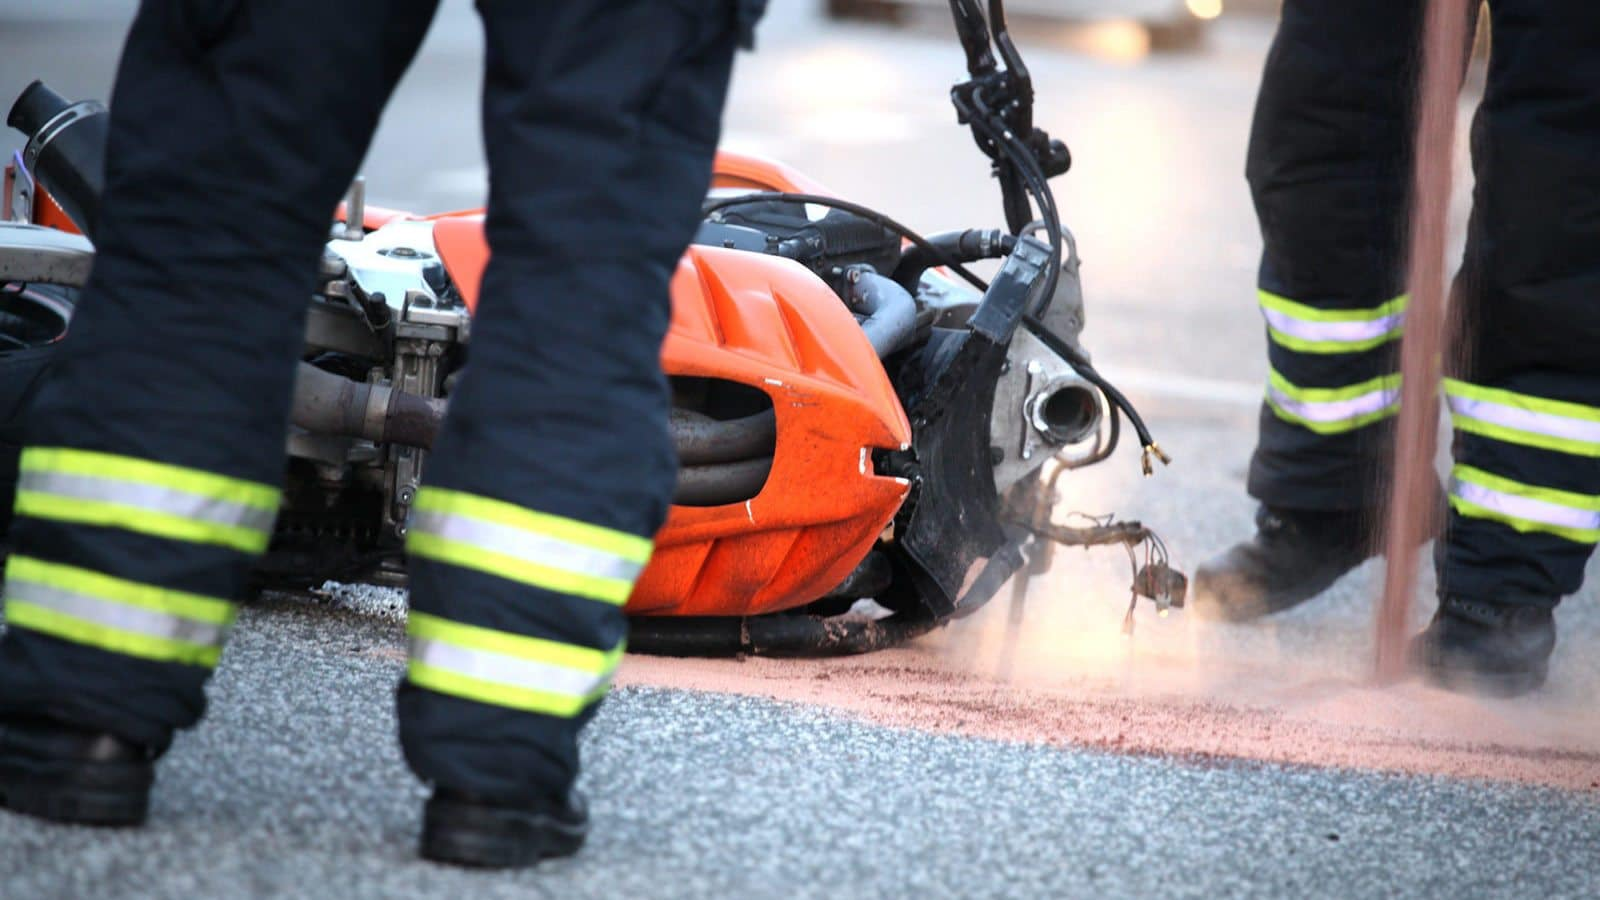 motorcycle accident with EMTs on the scene